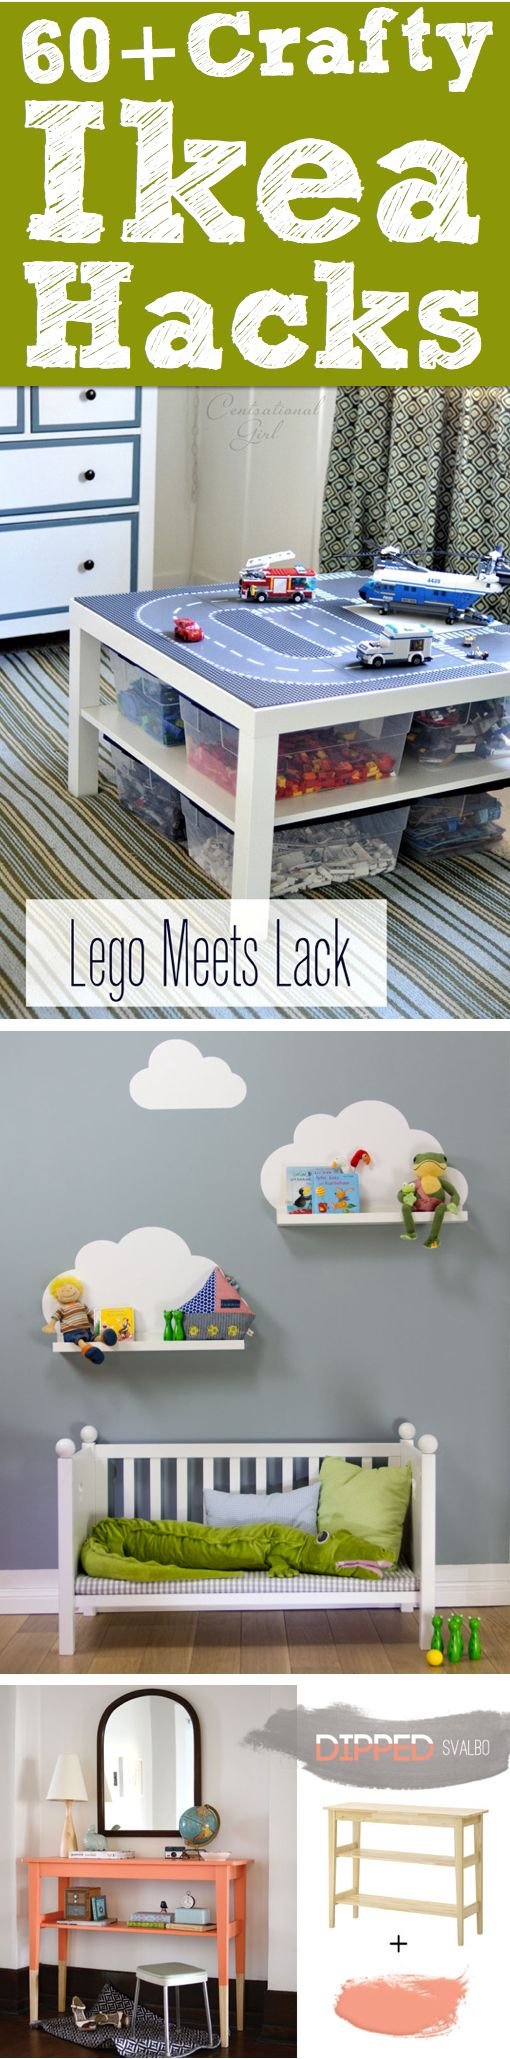 ikea hacks lego and spielzimmer on pinterest. Black Bedroom Furniture Sets. Home Design Ideas